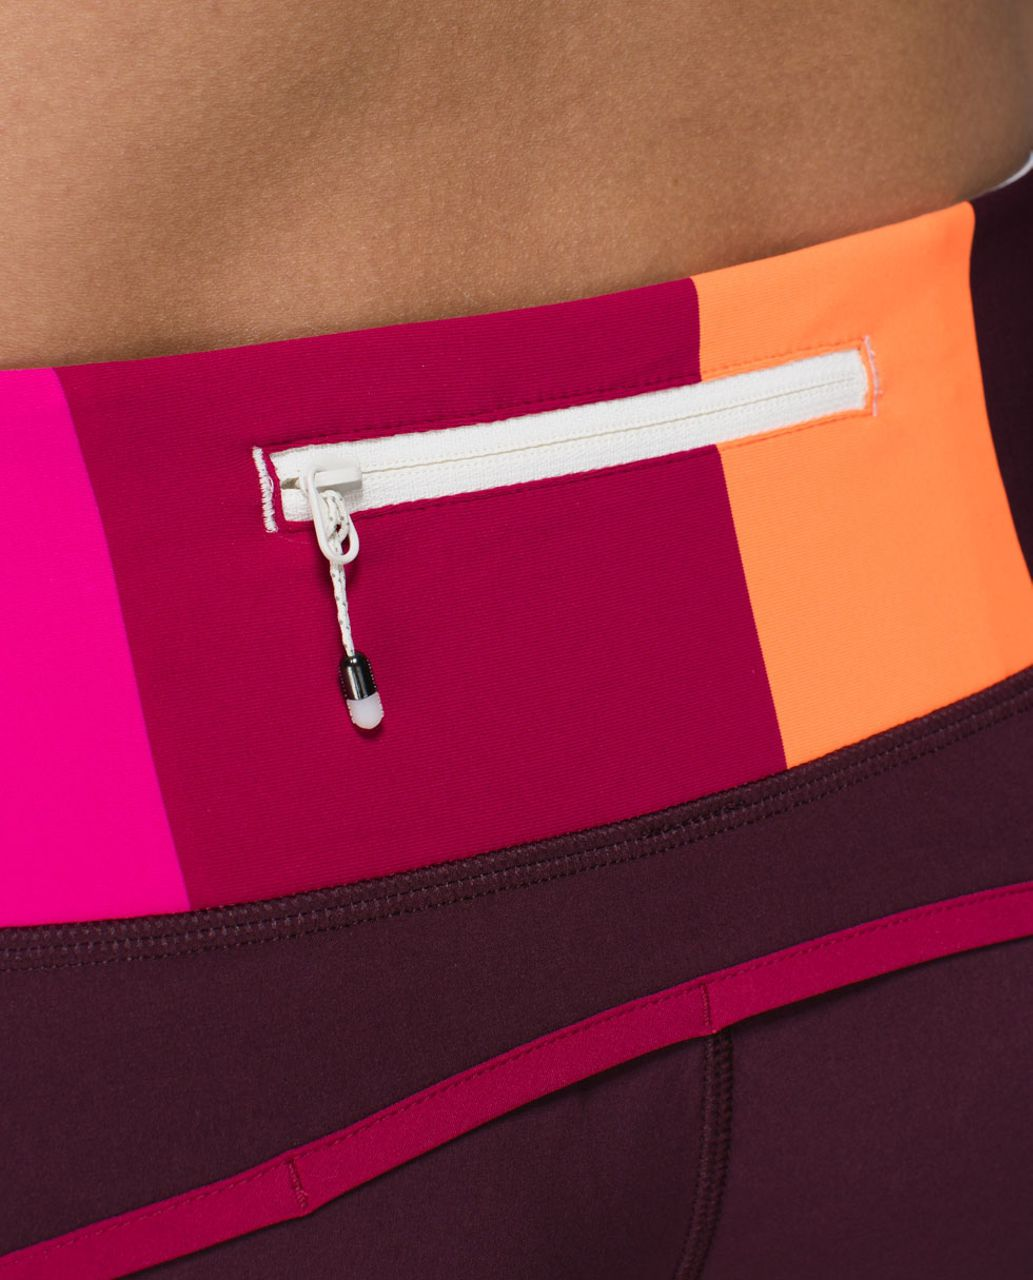 Lululemon Run Times Short *4-way Stretch - Bordeaux Drama / Bumble Berry / Blossom Stripe Bumble Berry Ghost